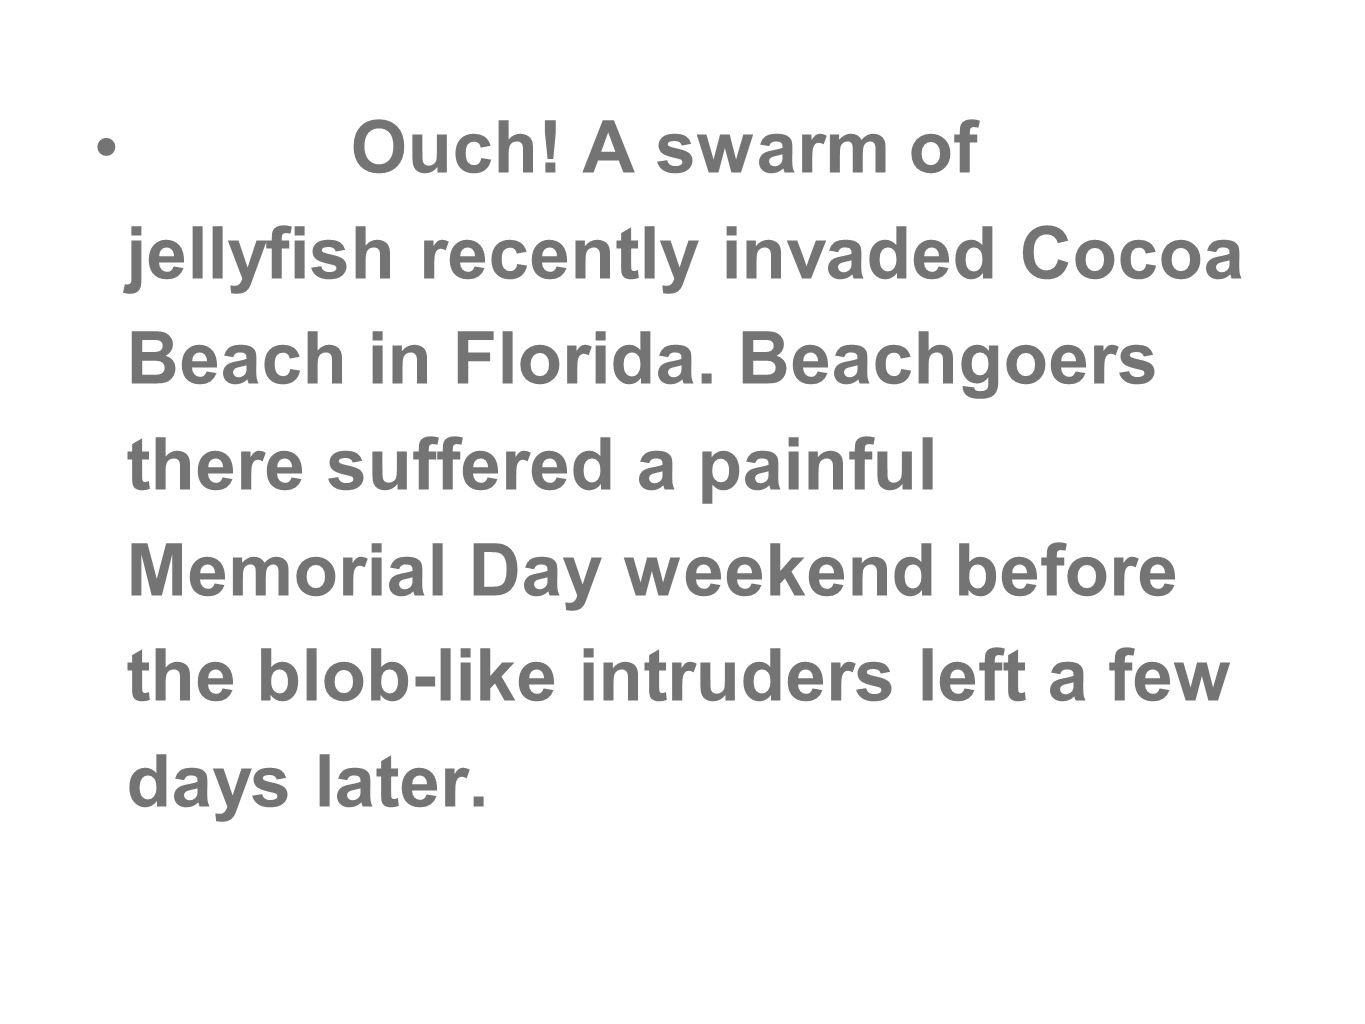 Ouch! A swarm of jellyfish recently invaded Cocoa Beach in Florida. Beachgoers there suffered a painful Memorial Day weekend before the blob-like intr